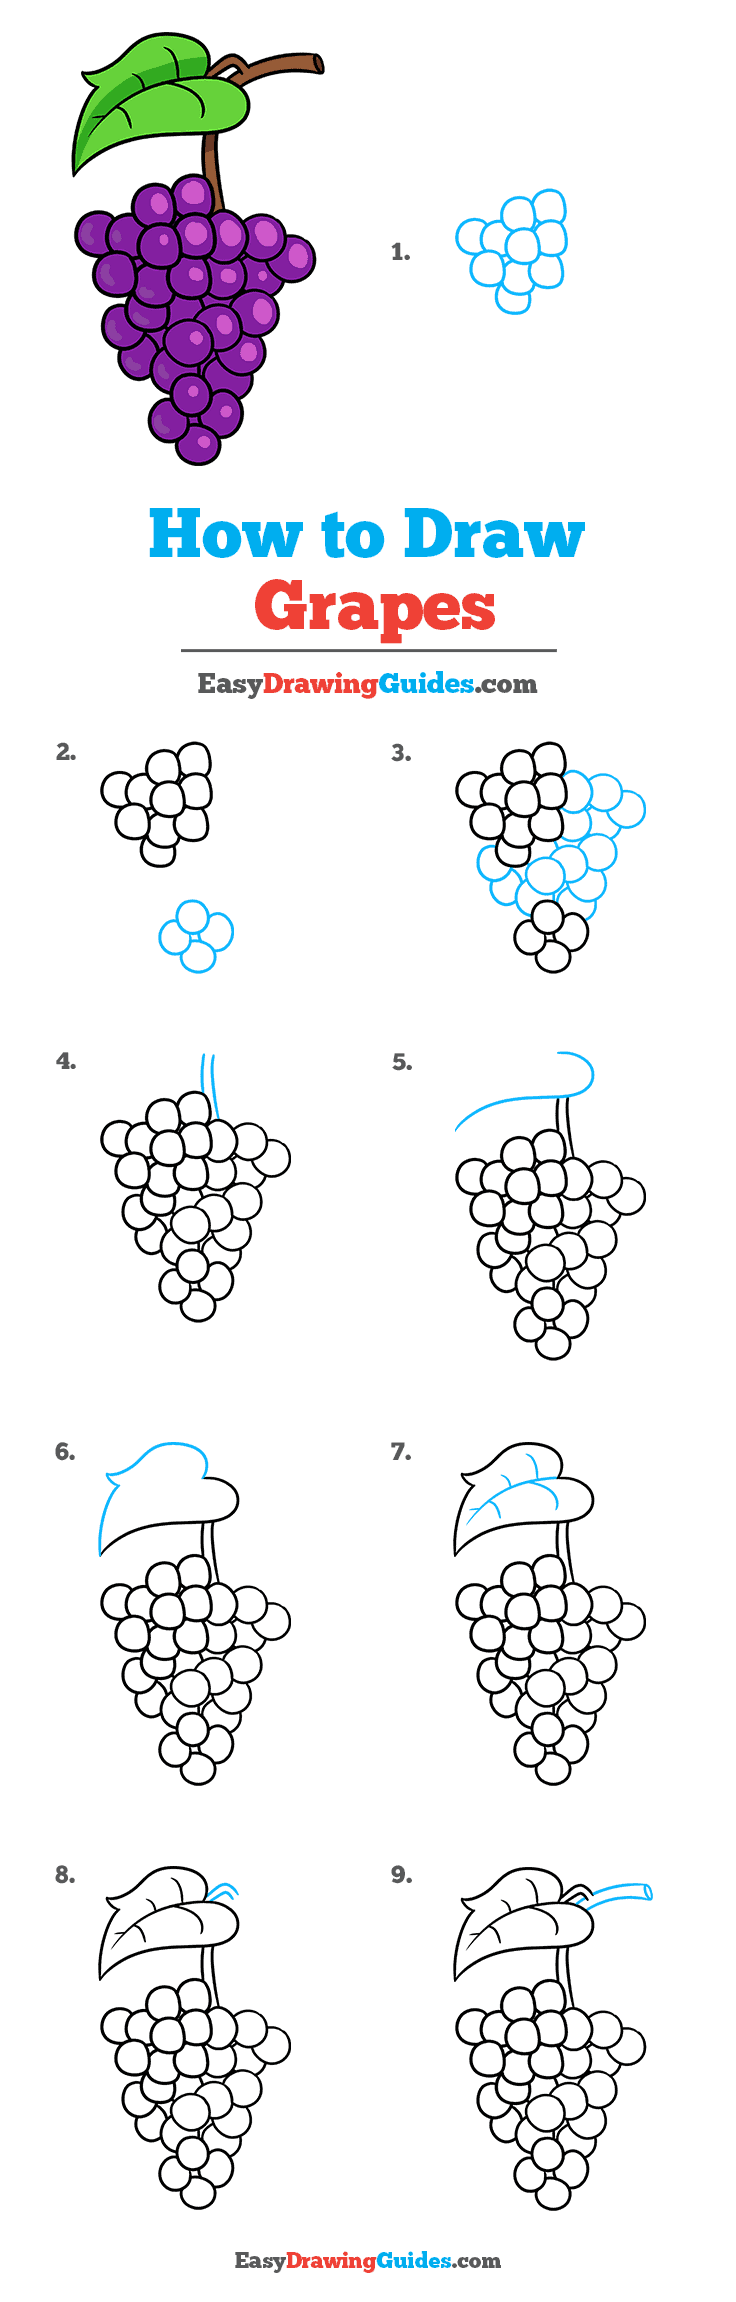 How to Draw Grapes Step by Step Tutorial Image